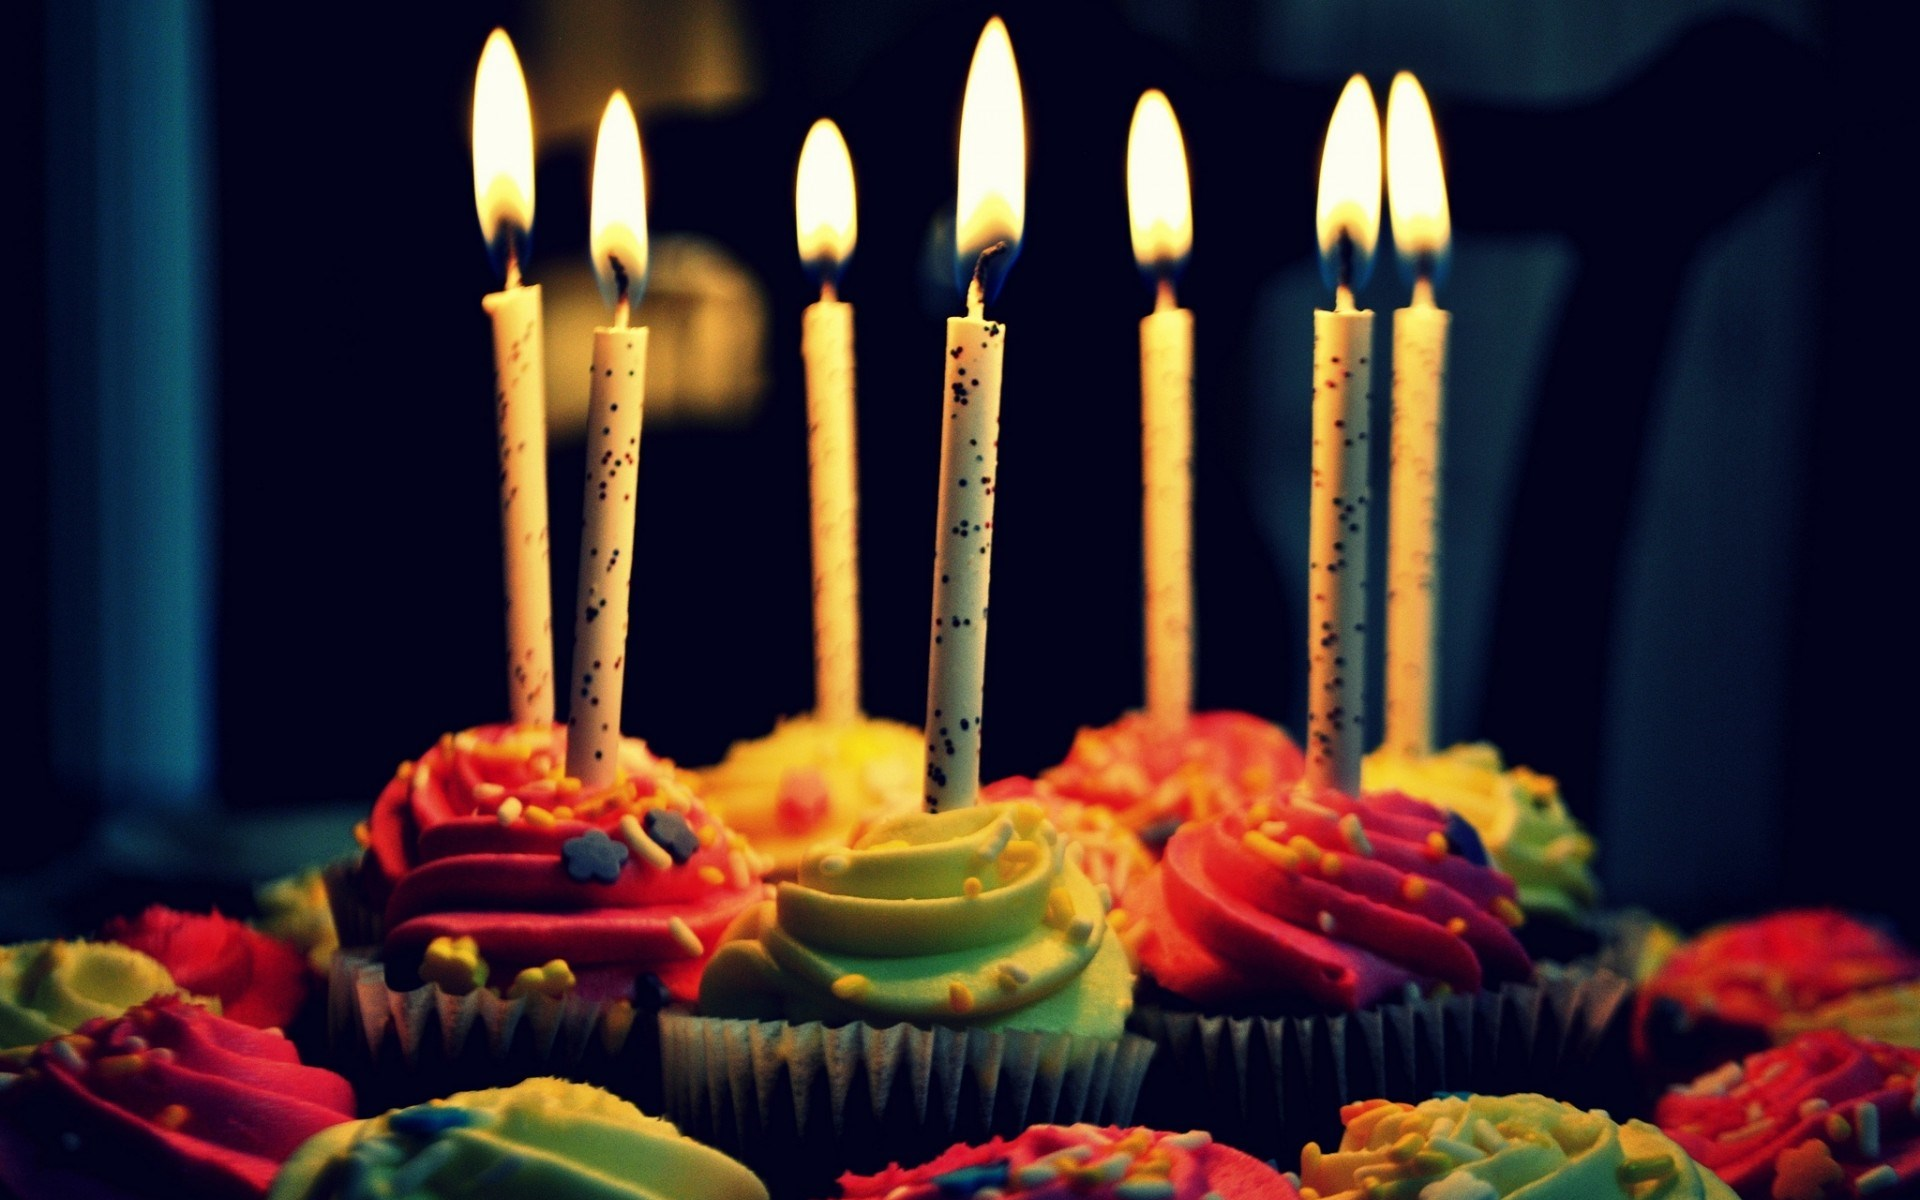 Celebration Cake Muffins Birthday Candles Fire Flame Wallpaper 1920x1200 24019